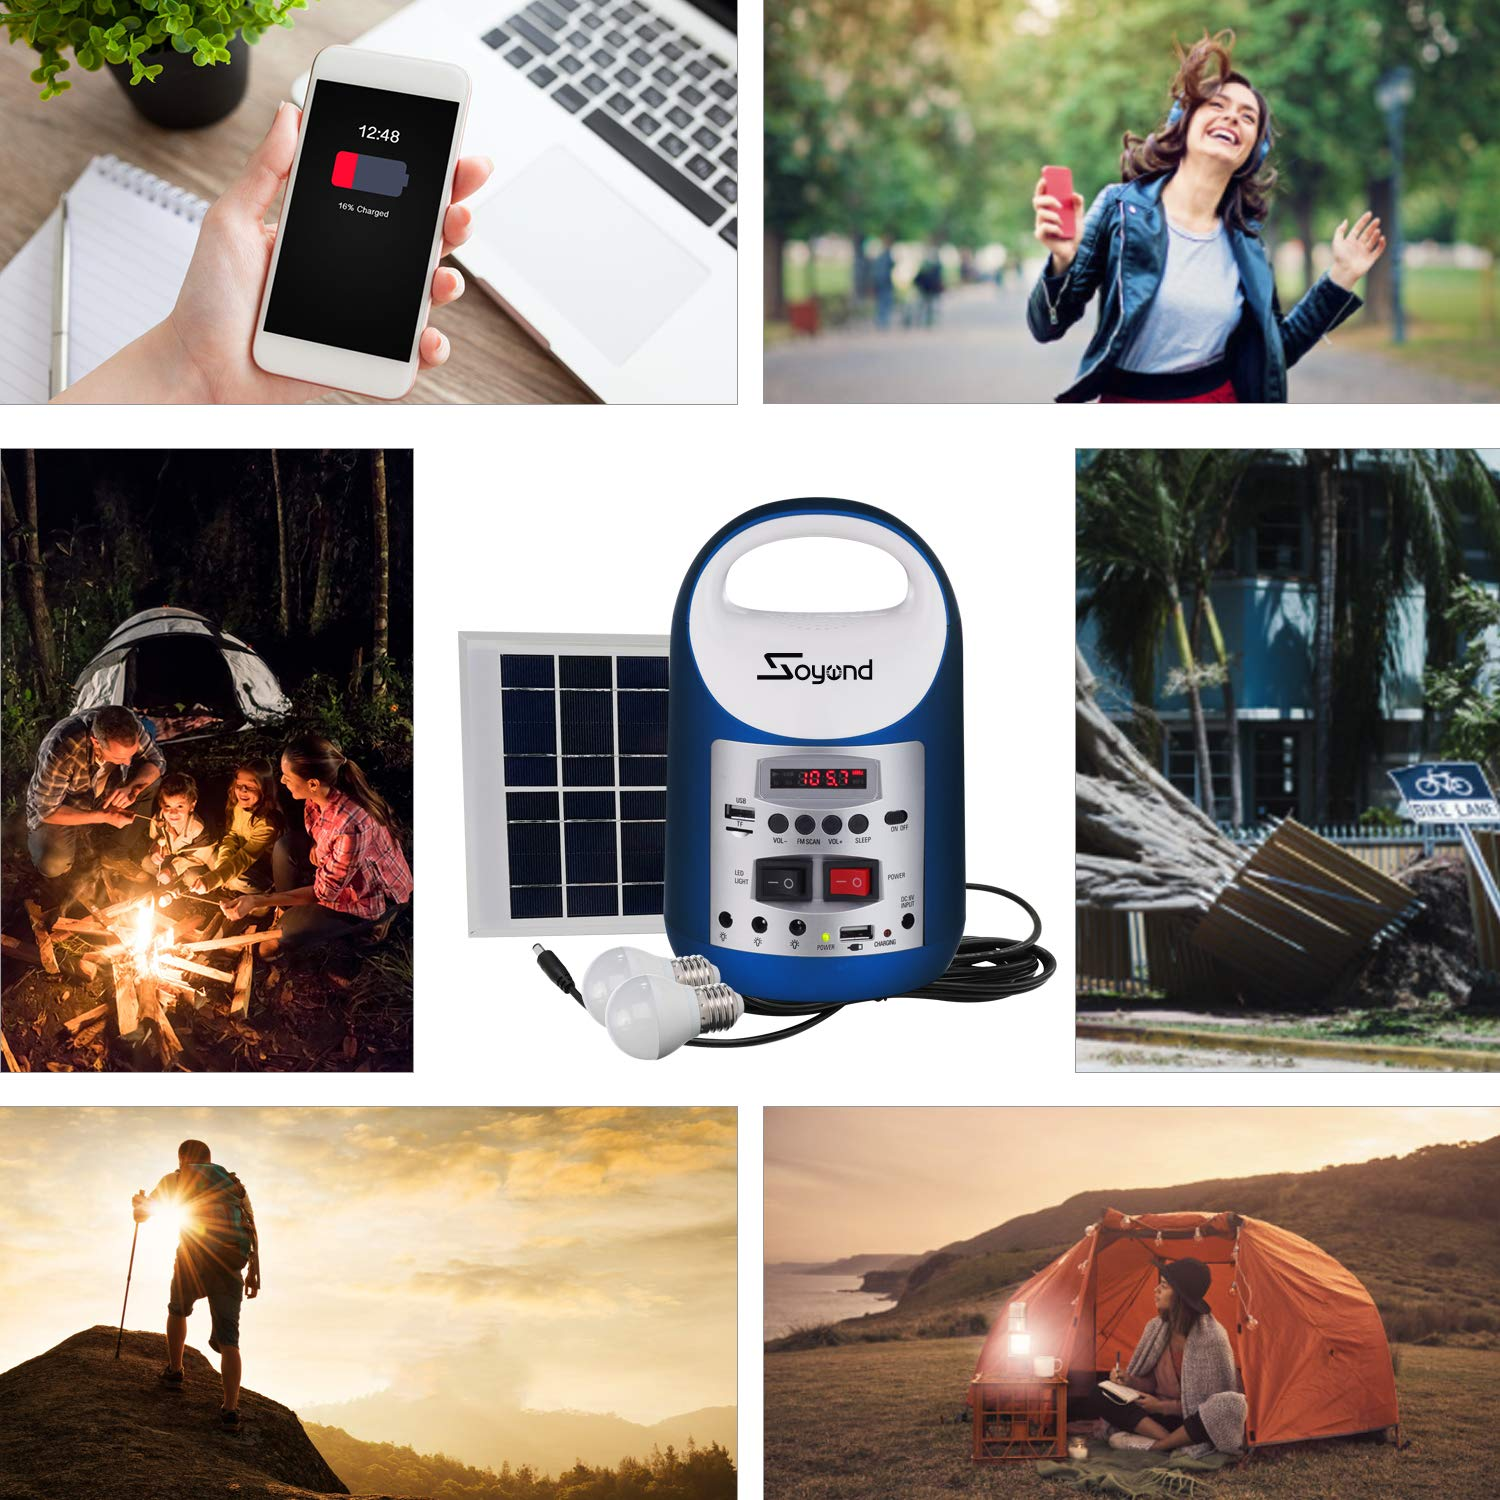 soyond Portable Solar Generator with Solar Panel Solar Powered Generator Inverter Small Basic Portable Electric Generator Kit by soyond (Image #4)